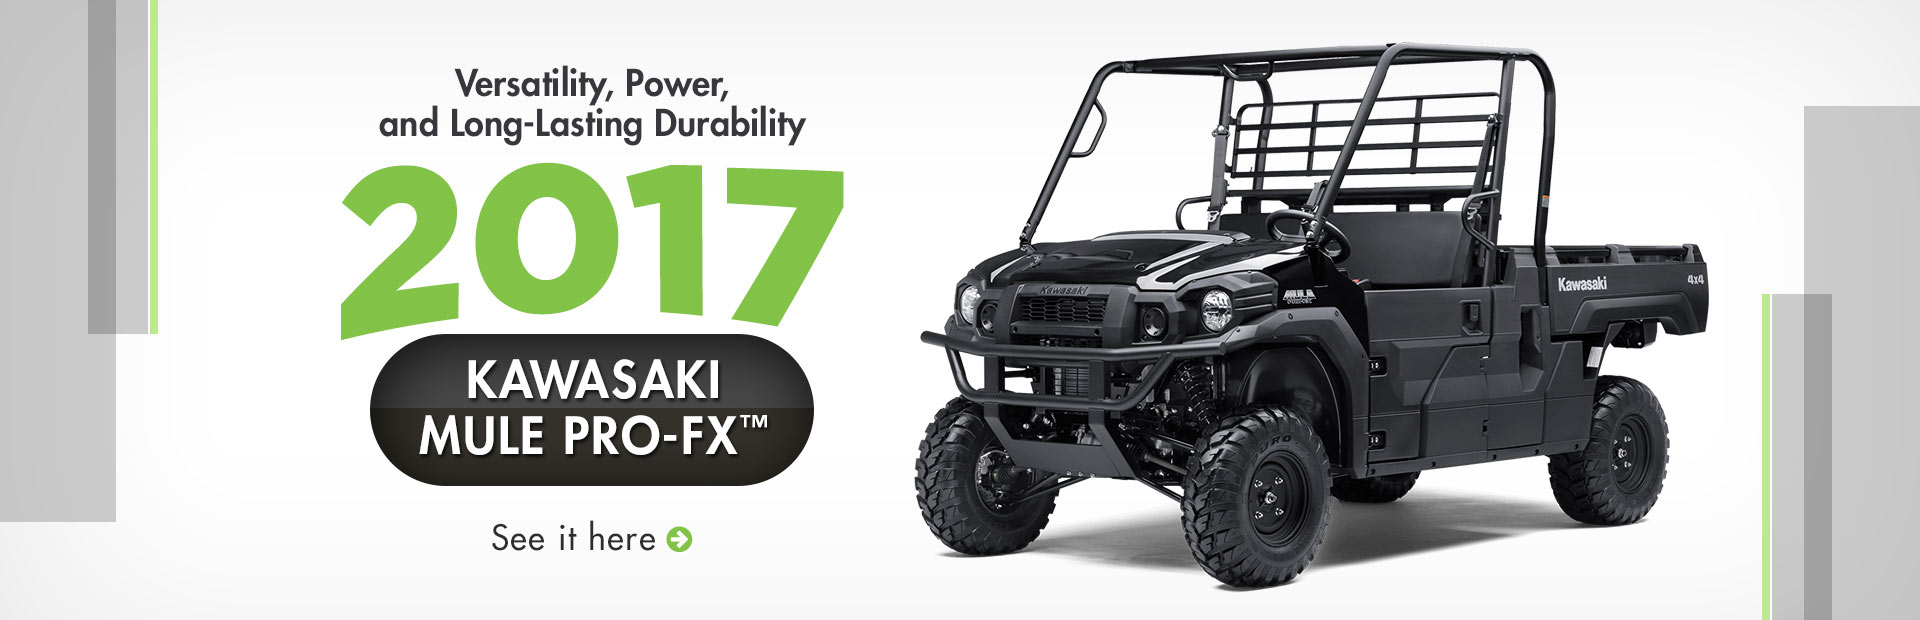 2017 Kawasaki MULE PRO-FX™: Click here to view our selection.